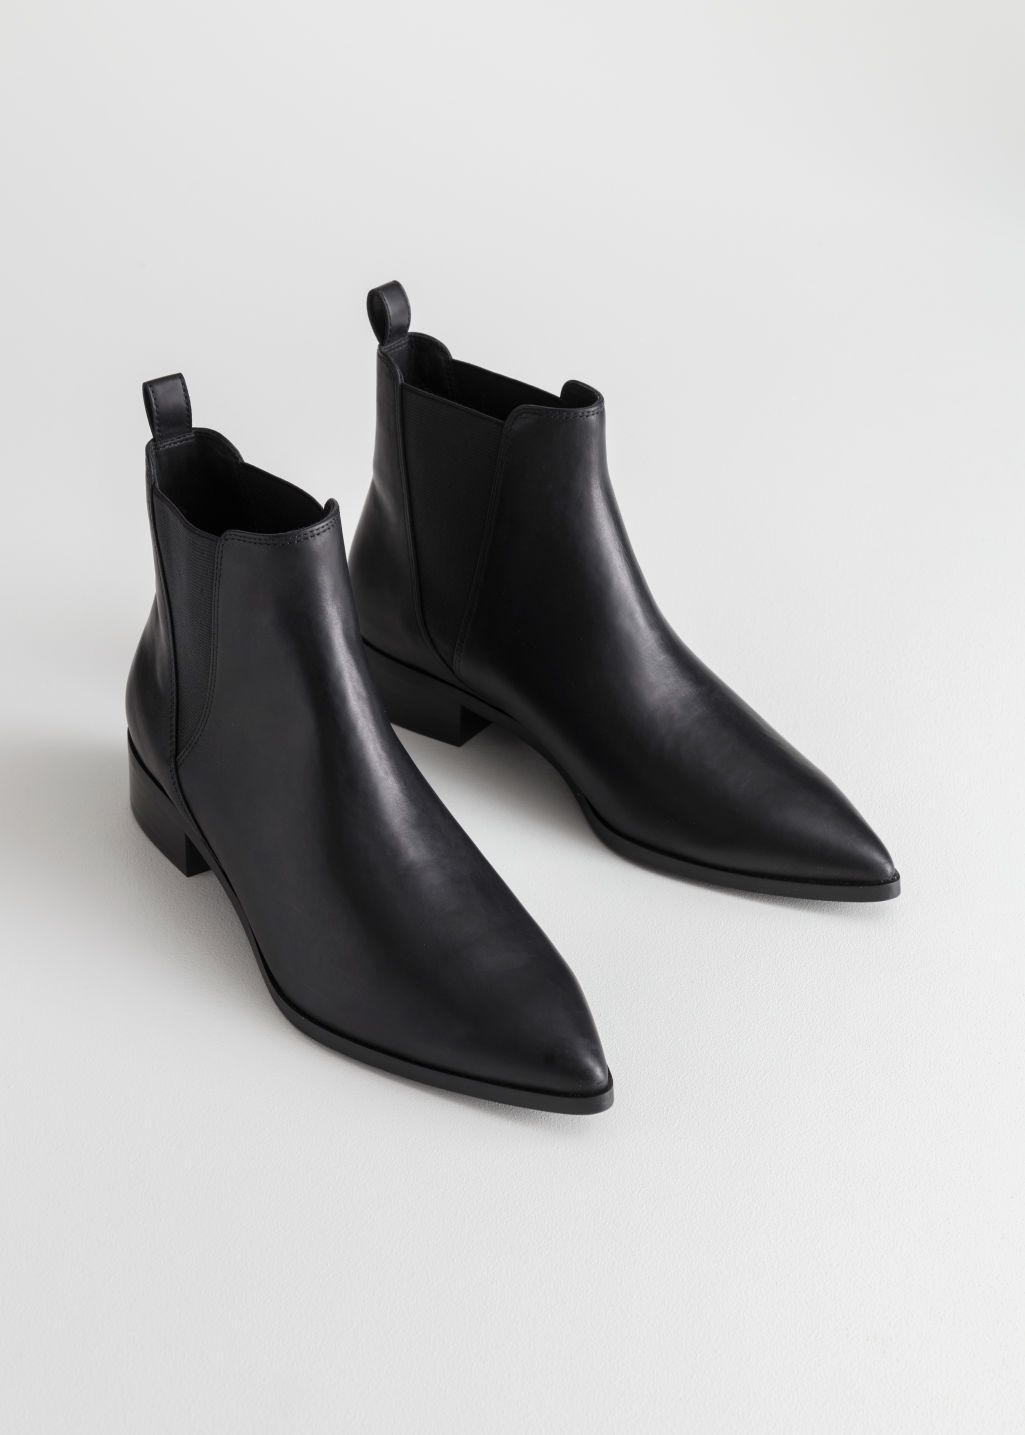 StillLife Top Image of Stories Chelsea Boots in Black